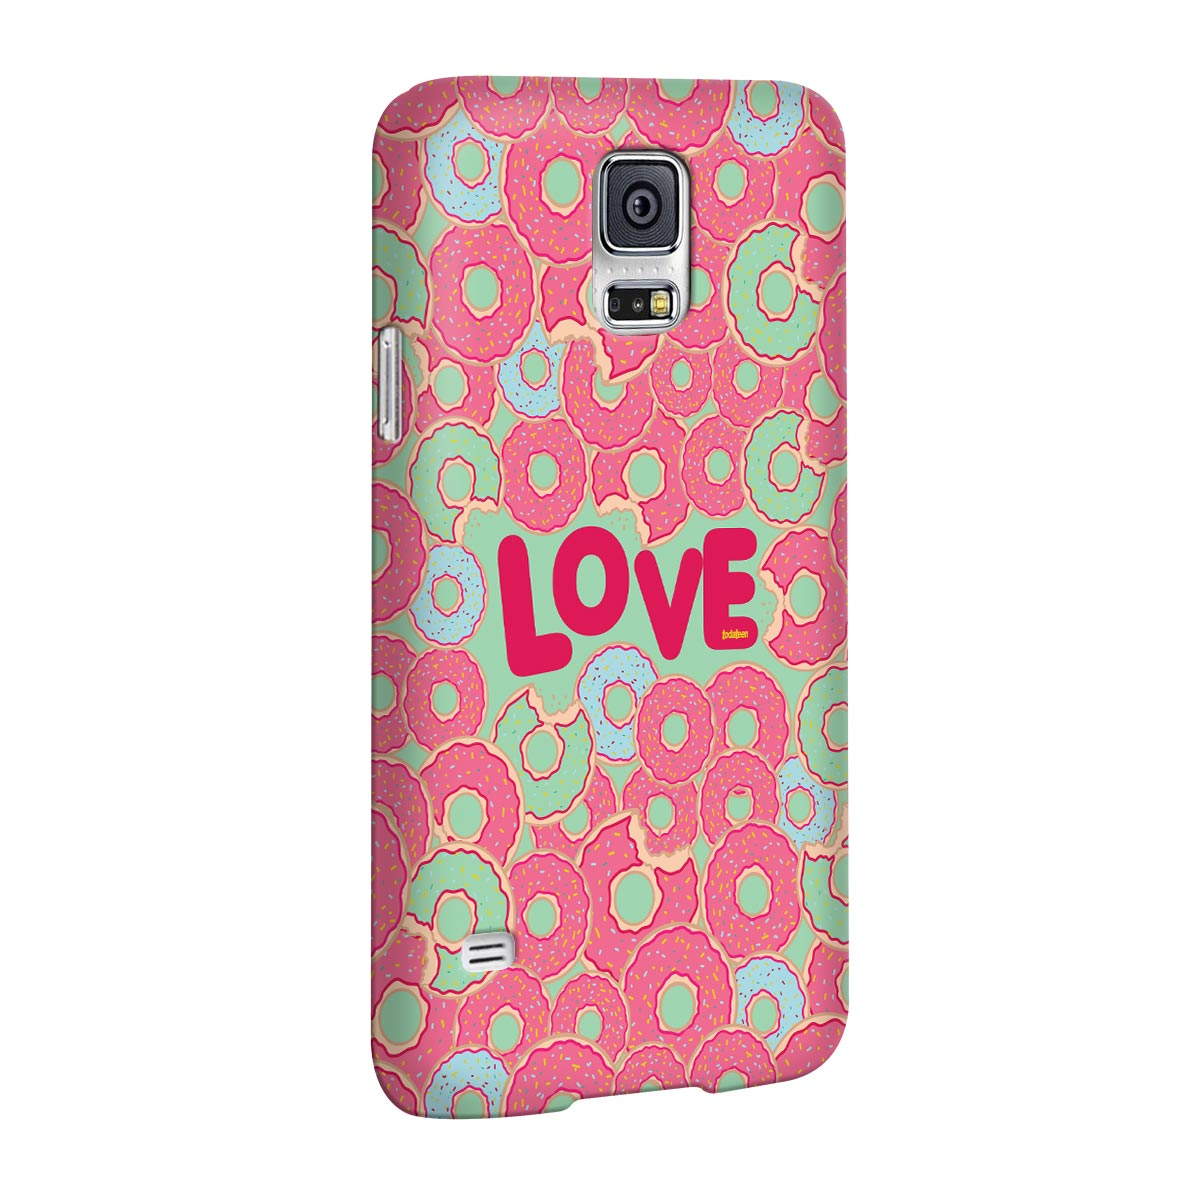 Capa para Galaxy S5 TodaTeen Love Donuts!